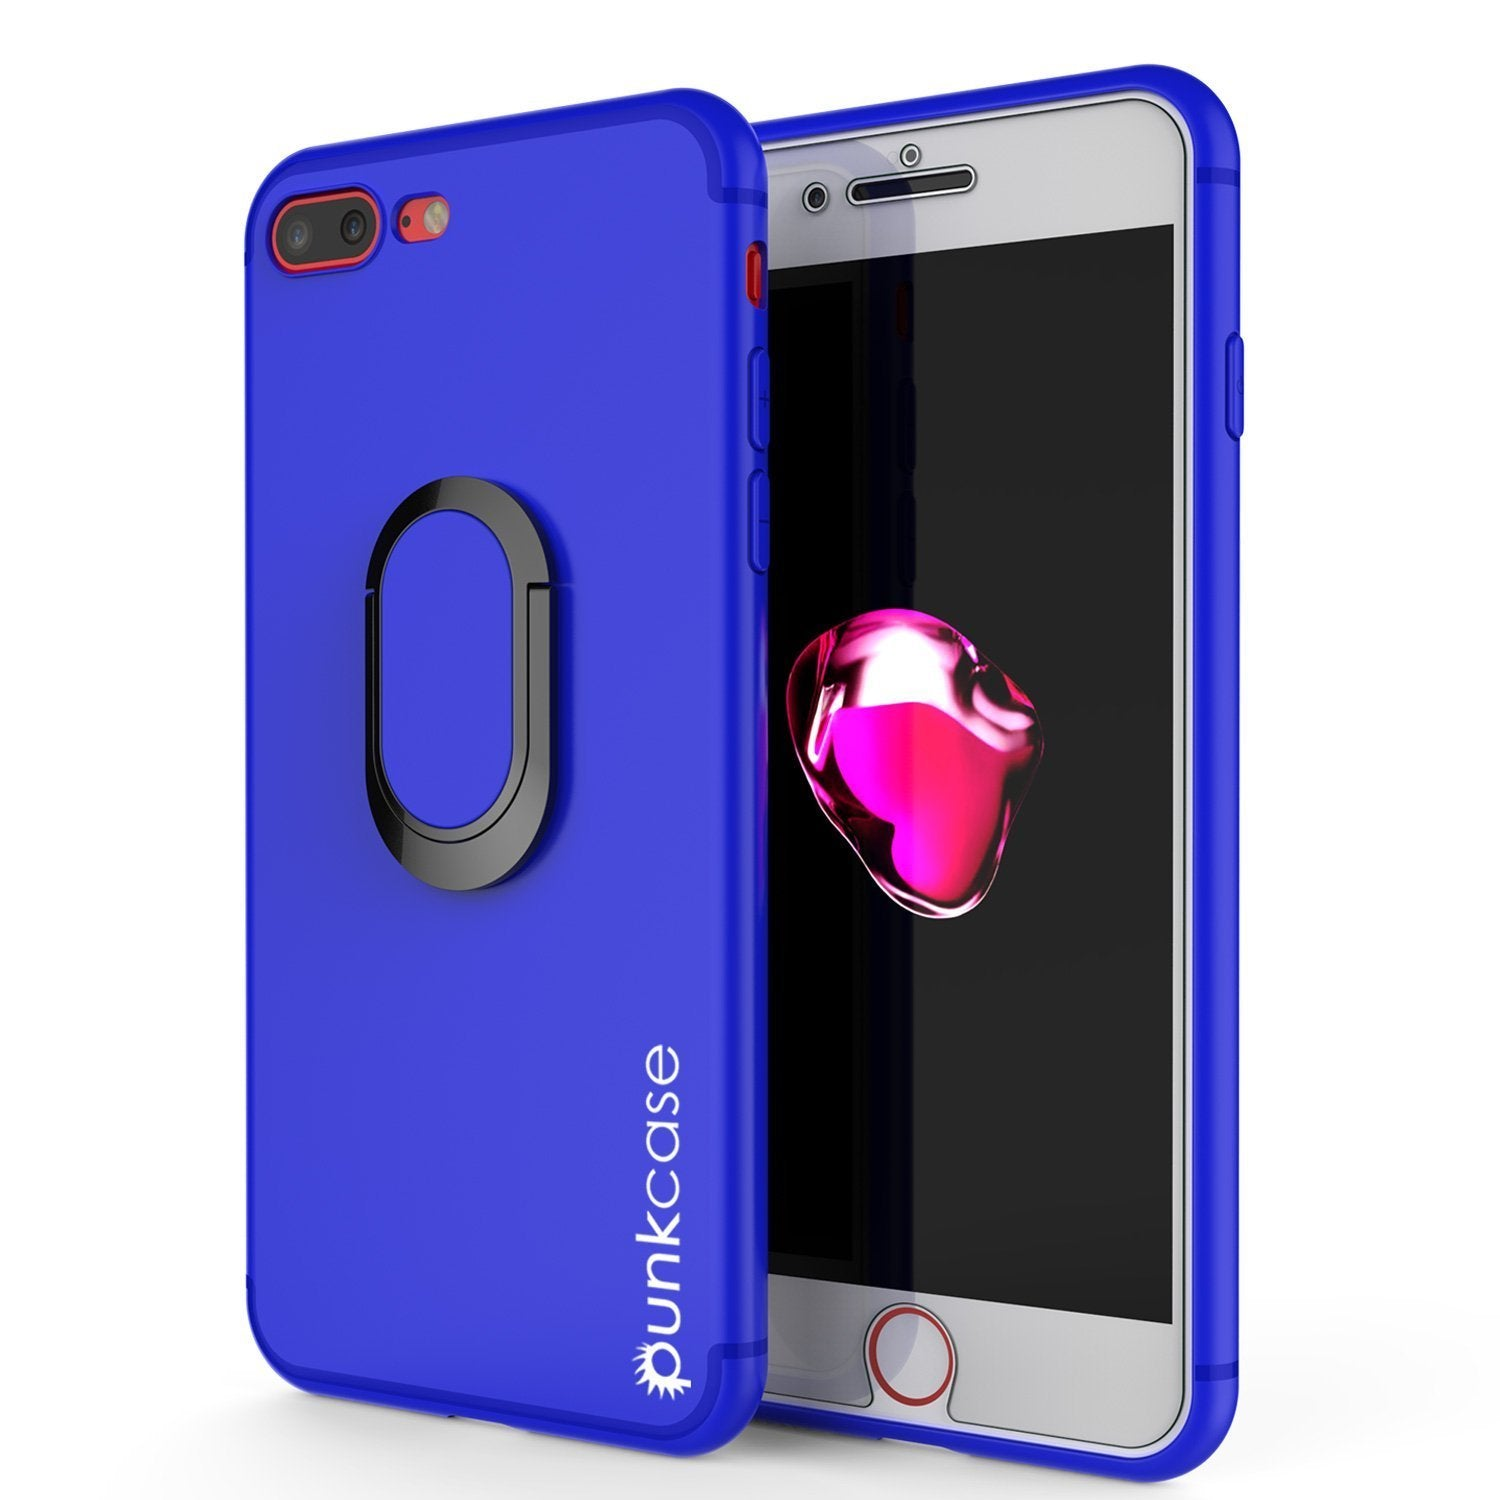 iPhone 8 PLUS Case, Punkcase Magnetix Protective TPU Cover W/ Kickstand, Tempered Glass Screen Protector [Blue] - PunkCase NZ